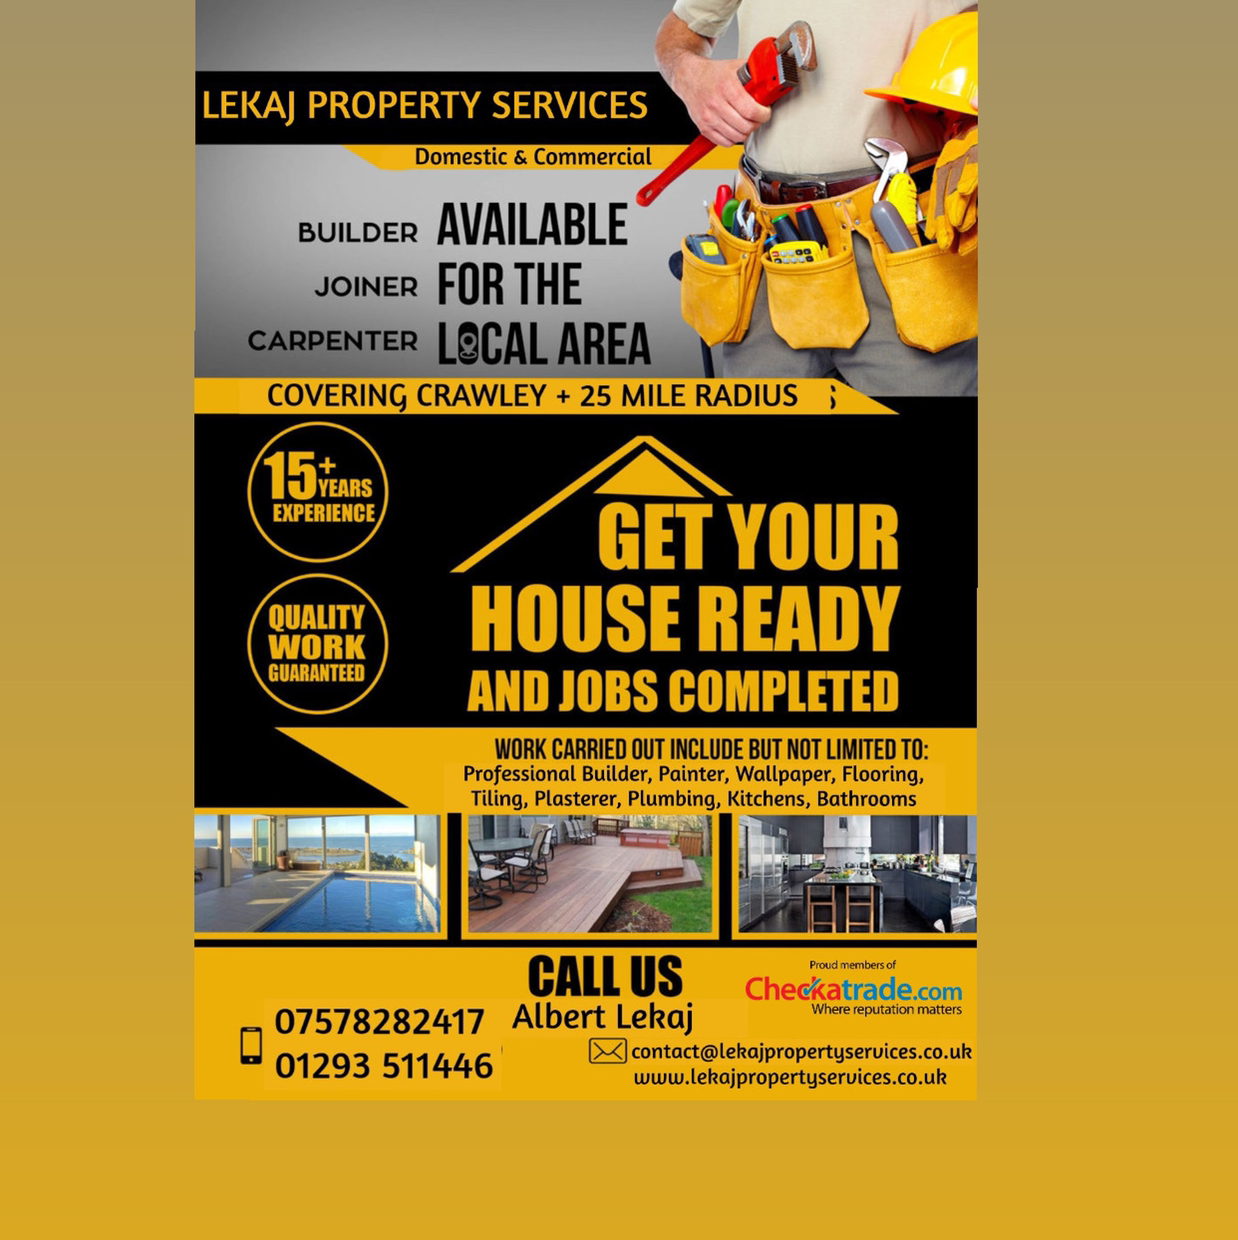 Lekajpropertyservices